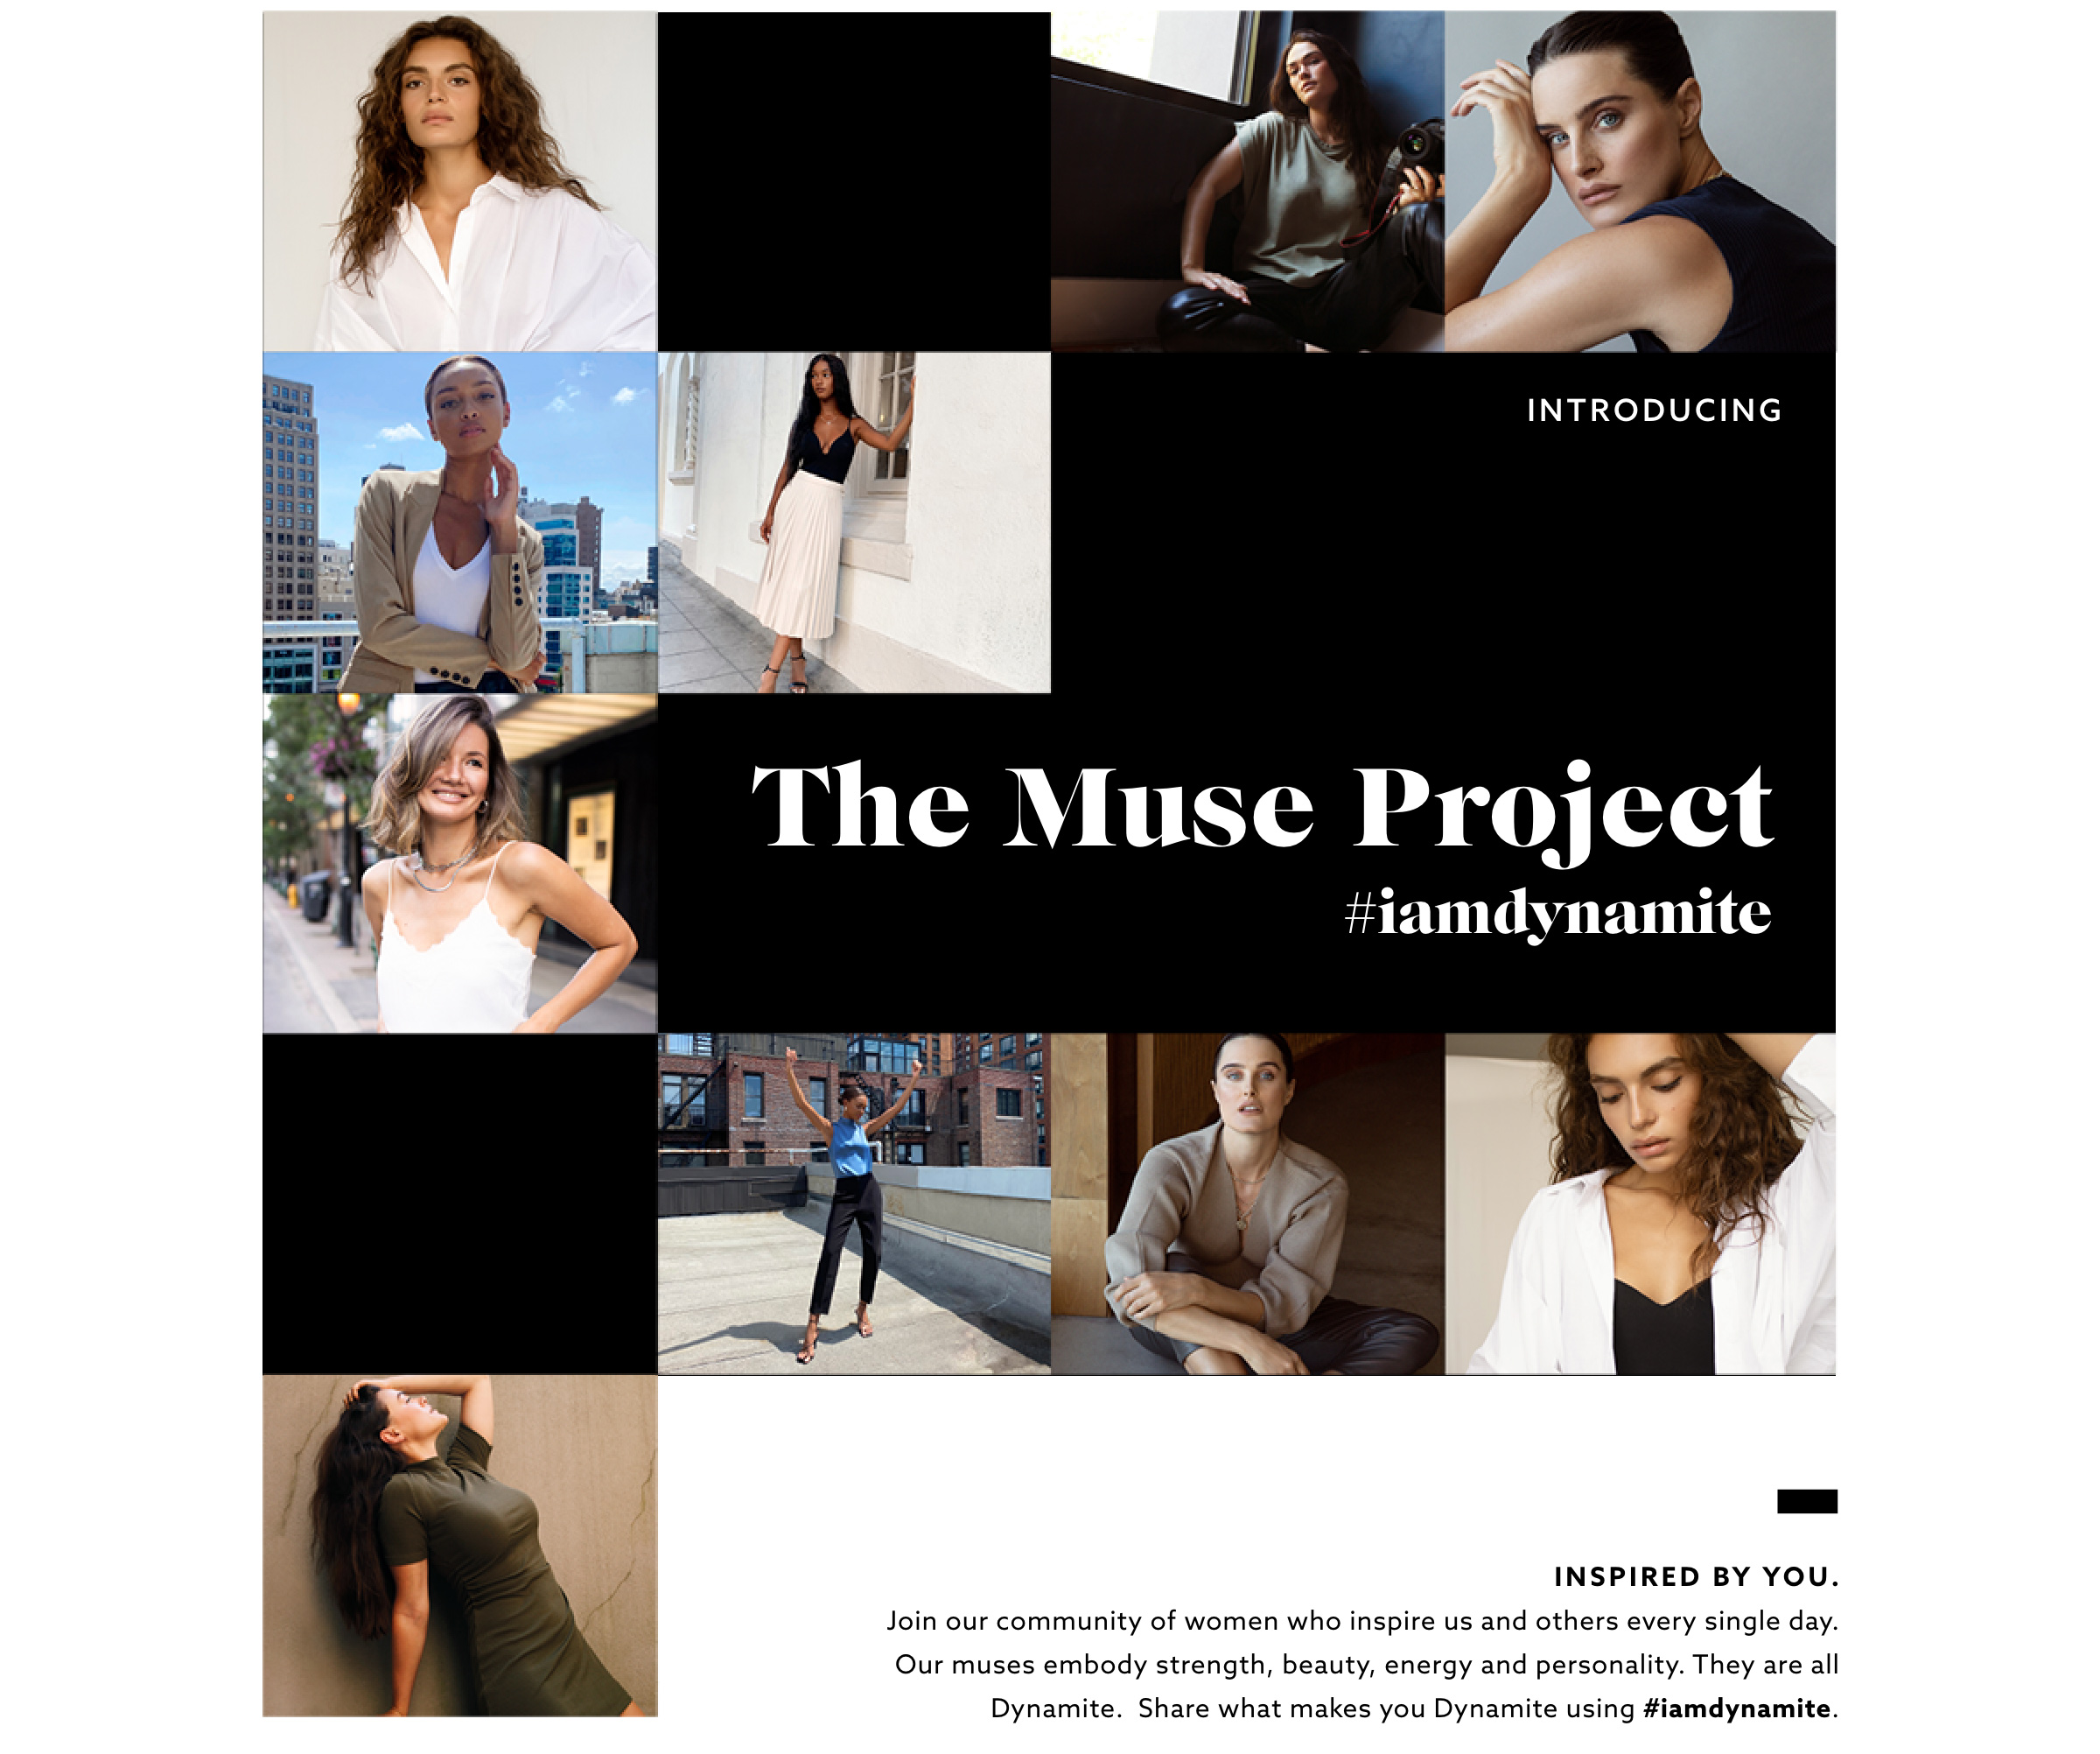 The muse project.Inspired by you. Join our community of women who inspire us and others every single day.Our muses embody strength, beauty, energy and personality. They are all Dynamite. Share what makes you Dynamite using #iamdynamite.